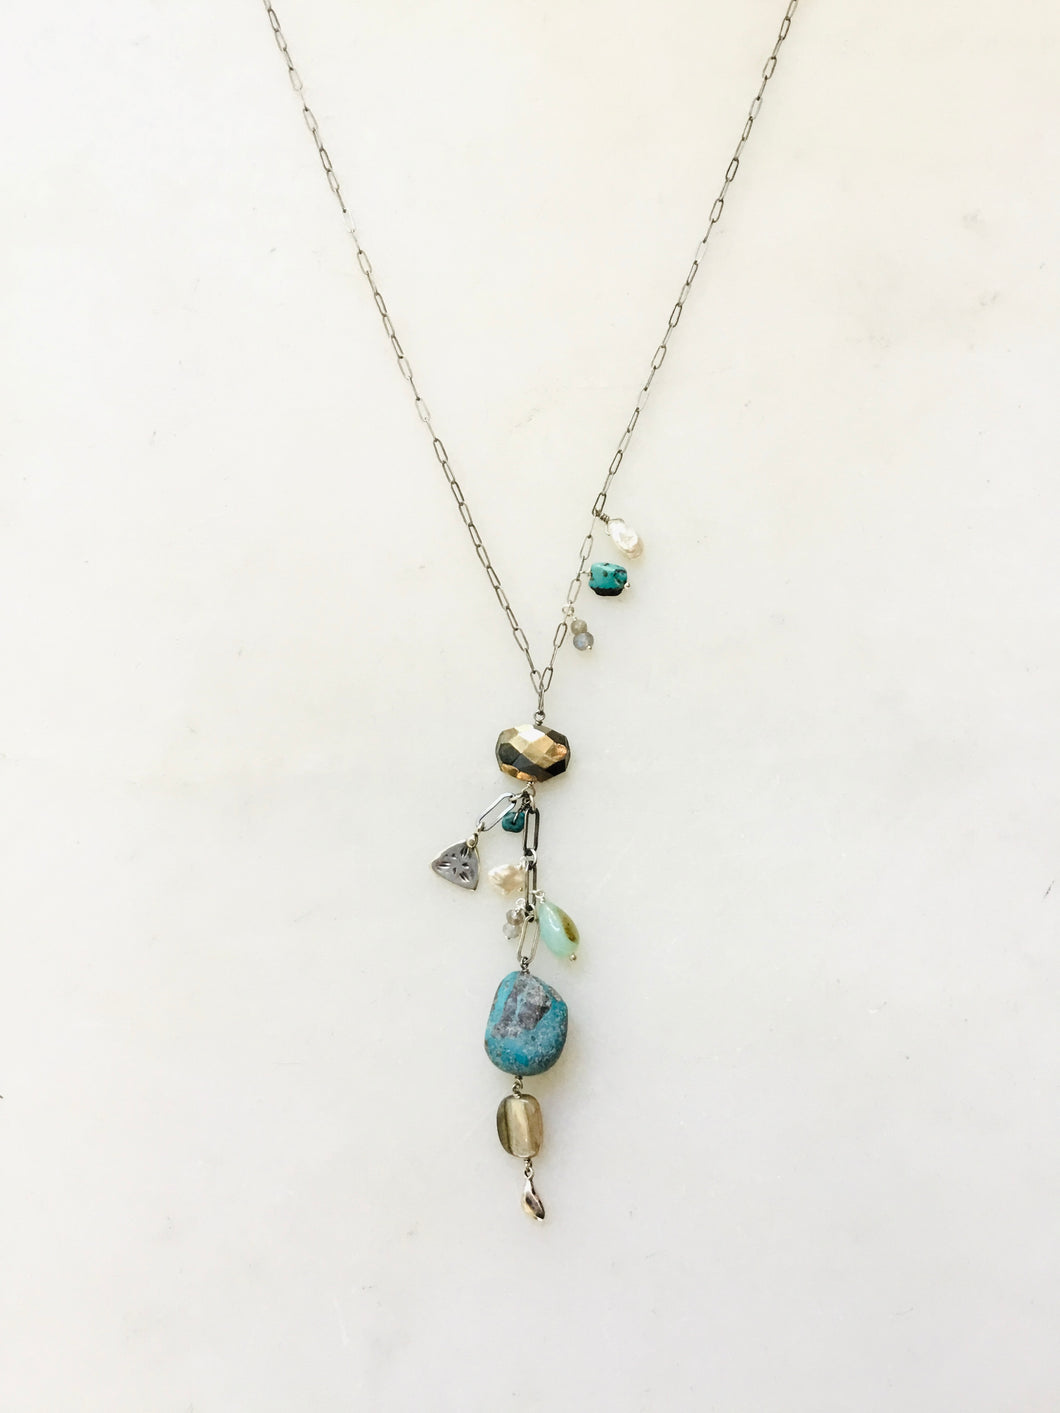 Turquoise and Silver Charm Y Necklace